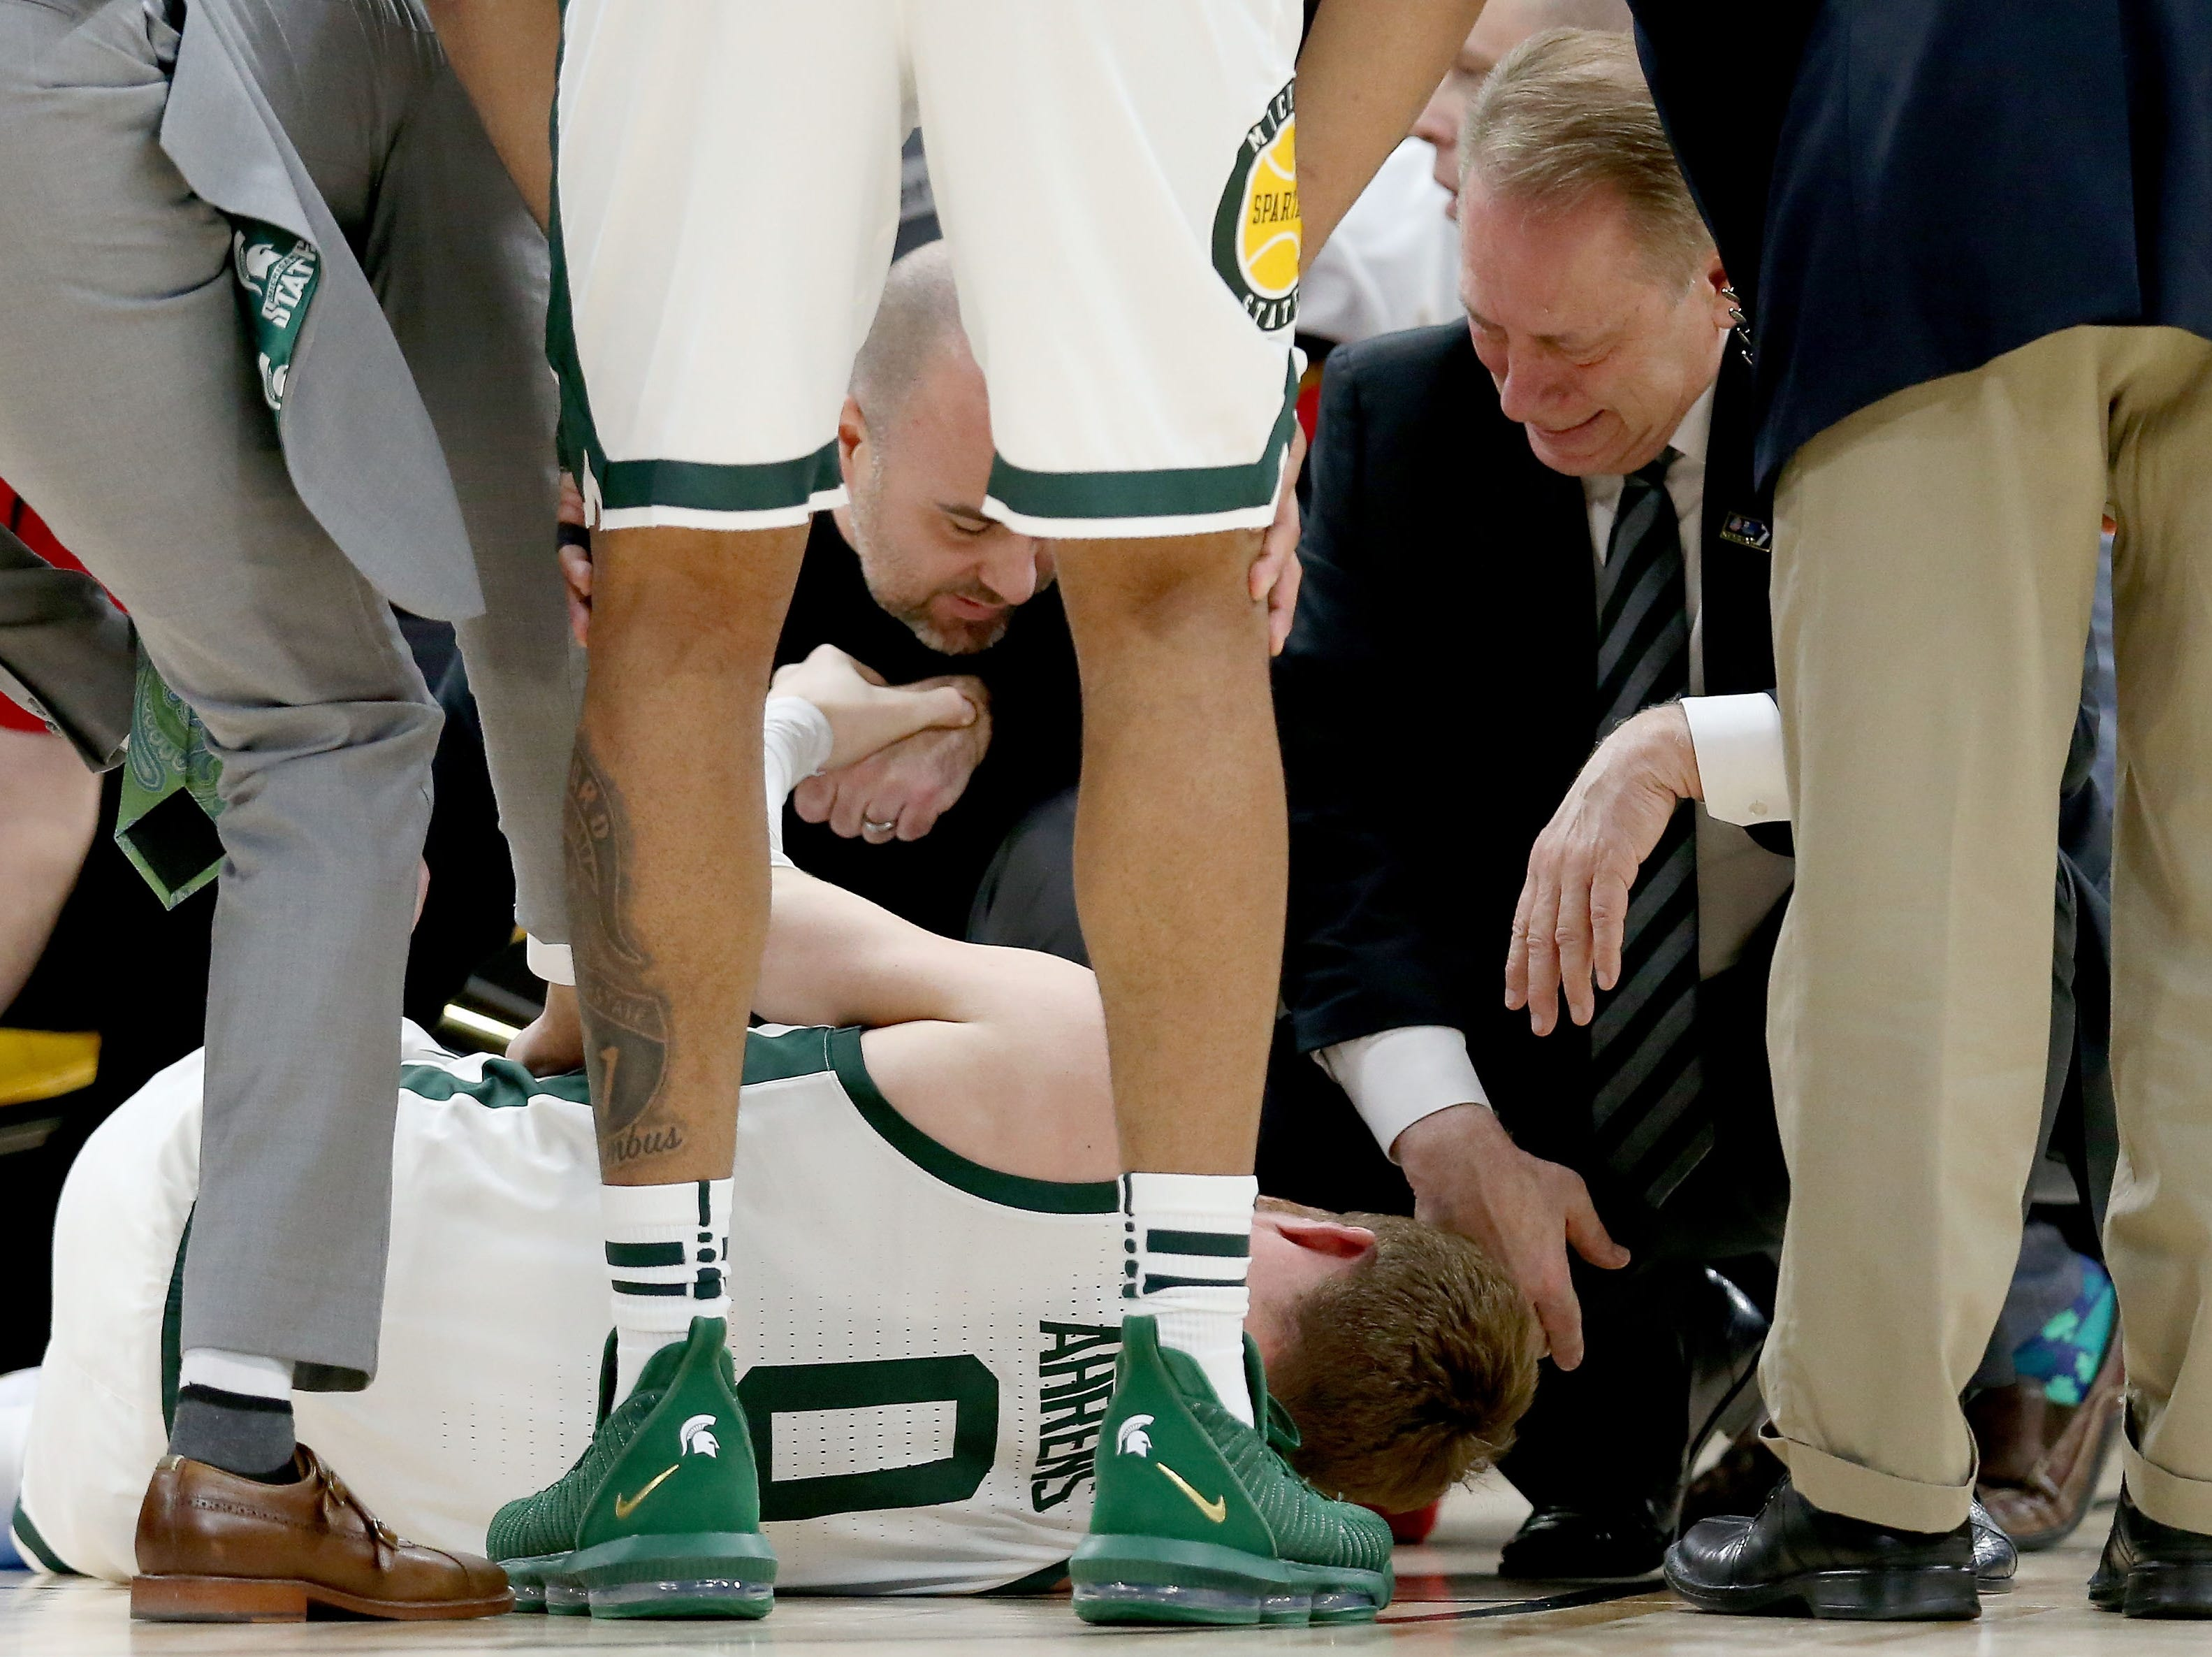 Head coach Tom Izzo of the Michigan State Spartans attends to Kyle Ahrens #0 after being injured in the first half against the Michigan Wolverines during the championship game of the Big Ten Basketball Tournament at the United Center on March 17, 2019 in Chicago, Illinois.